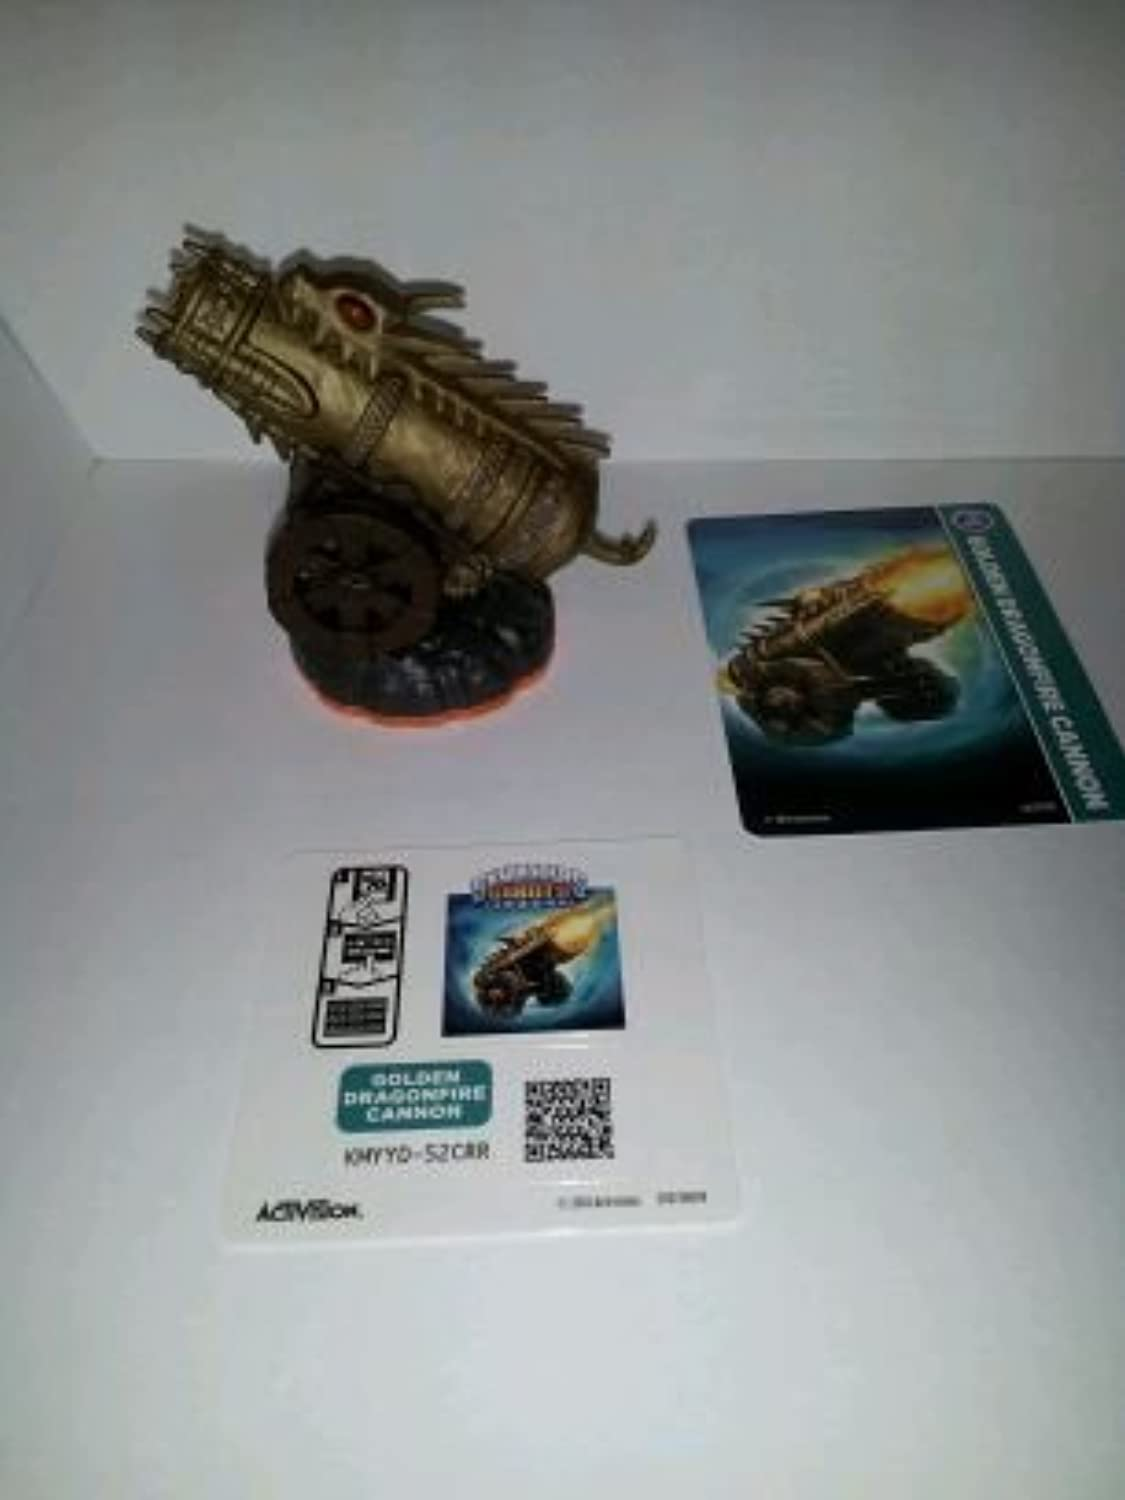 Skylanders Giants LOOSE Figure Golden Dragonfire Cannon [Includes Card & Online Code] by Activision [並行輸入品]